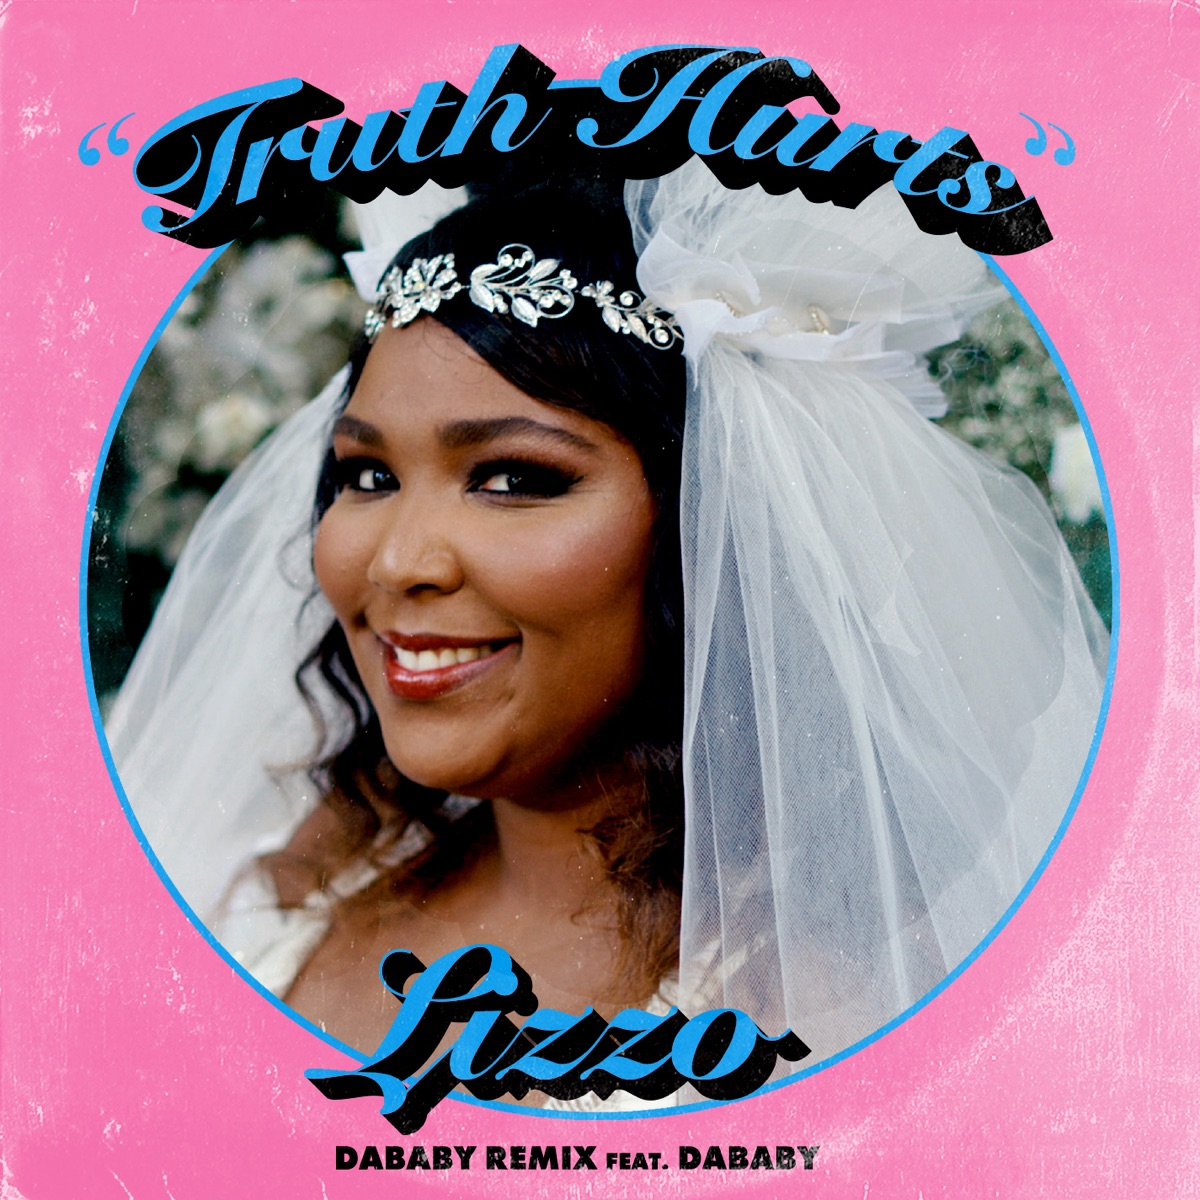 Truth Hurts DaBaby Remix feat DaBaby - Single Lizzo CD cover